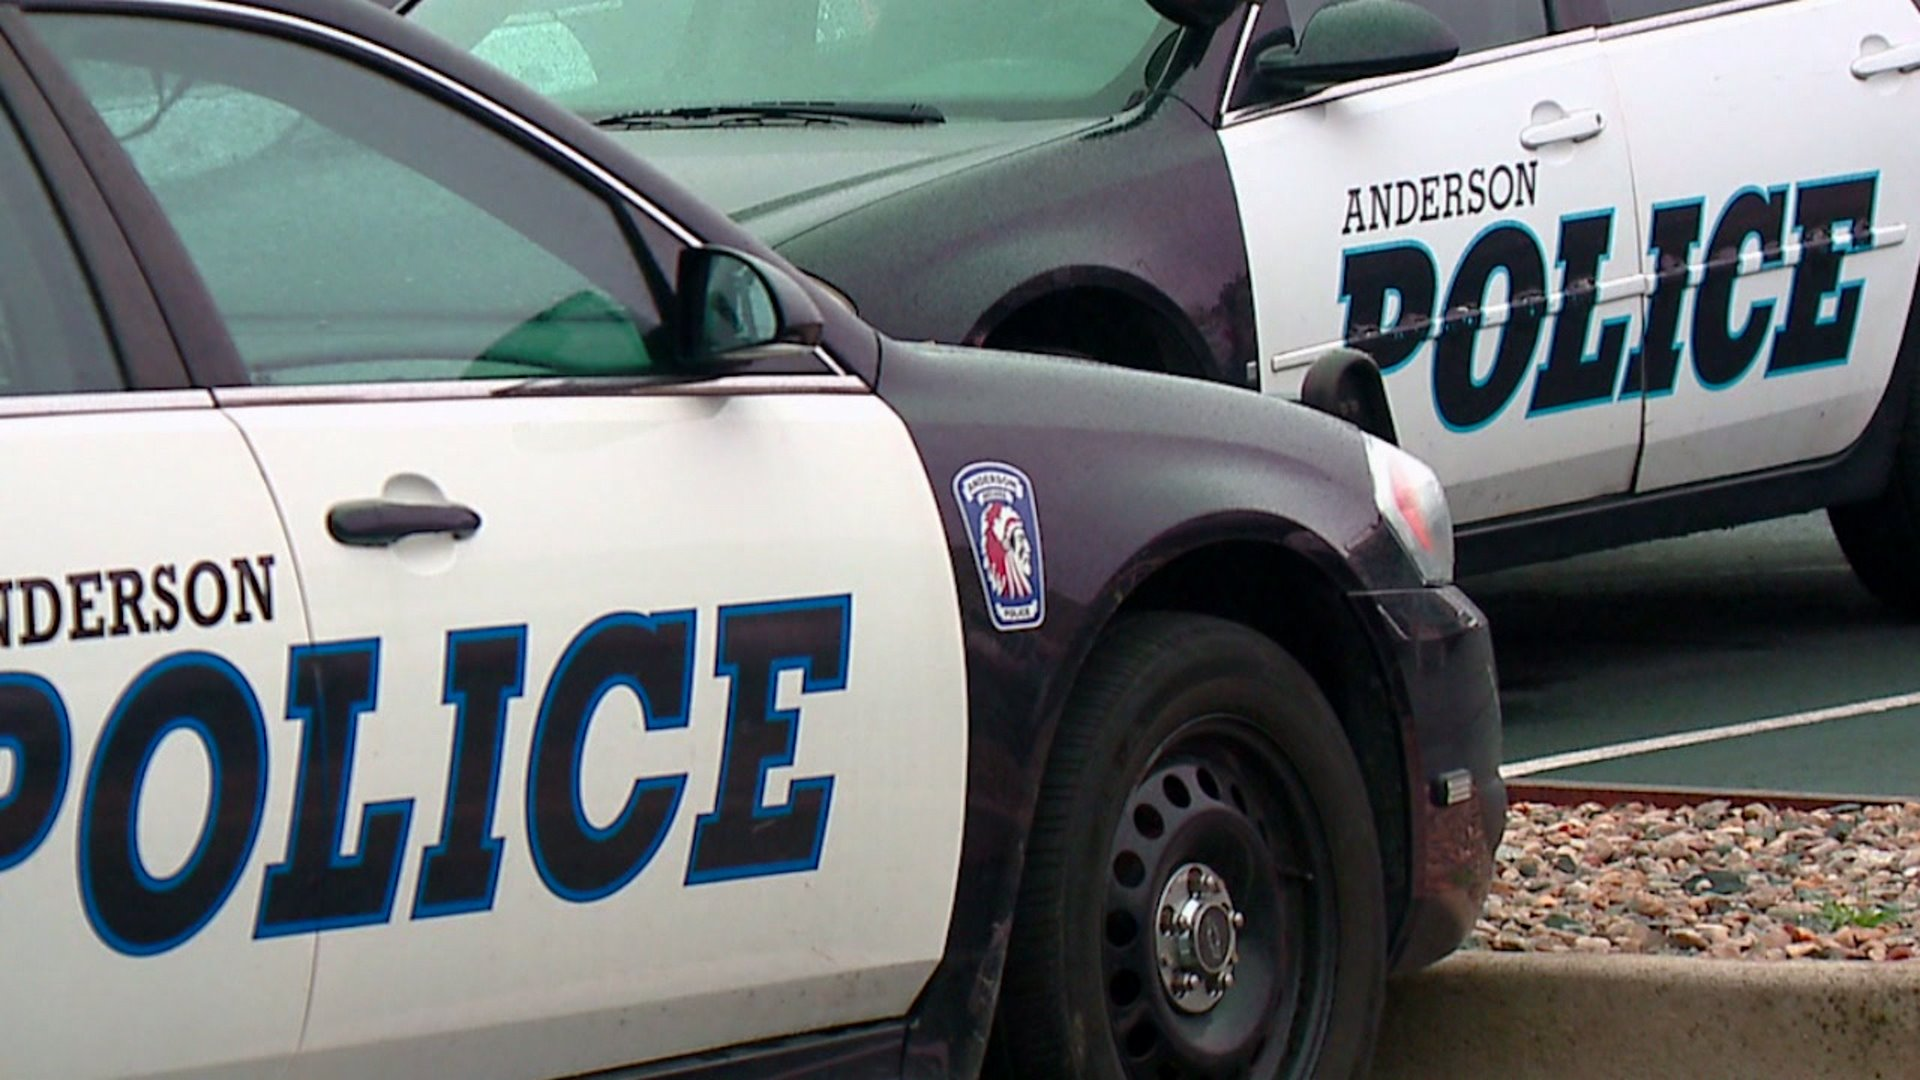 Juvenile shot in Anderson, Indiana